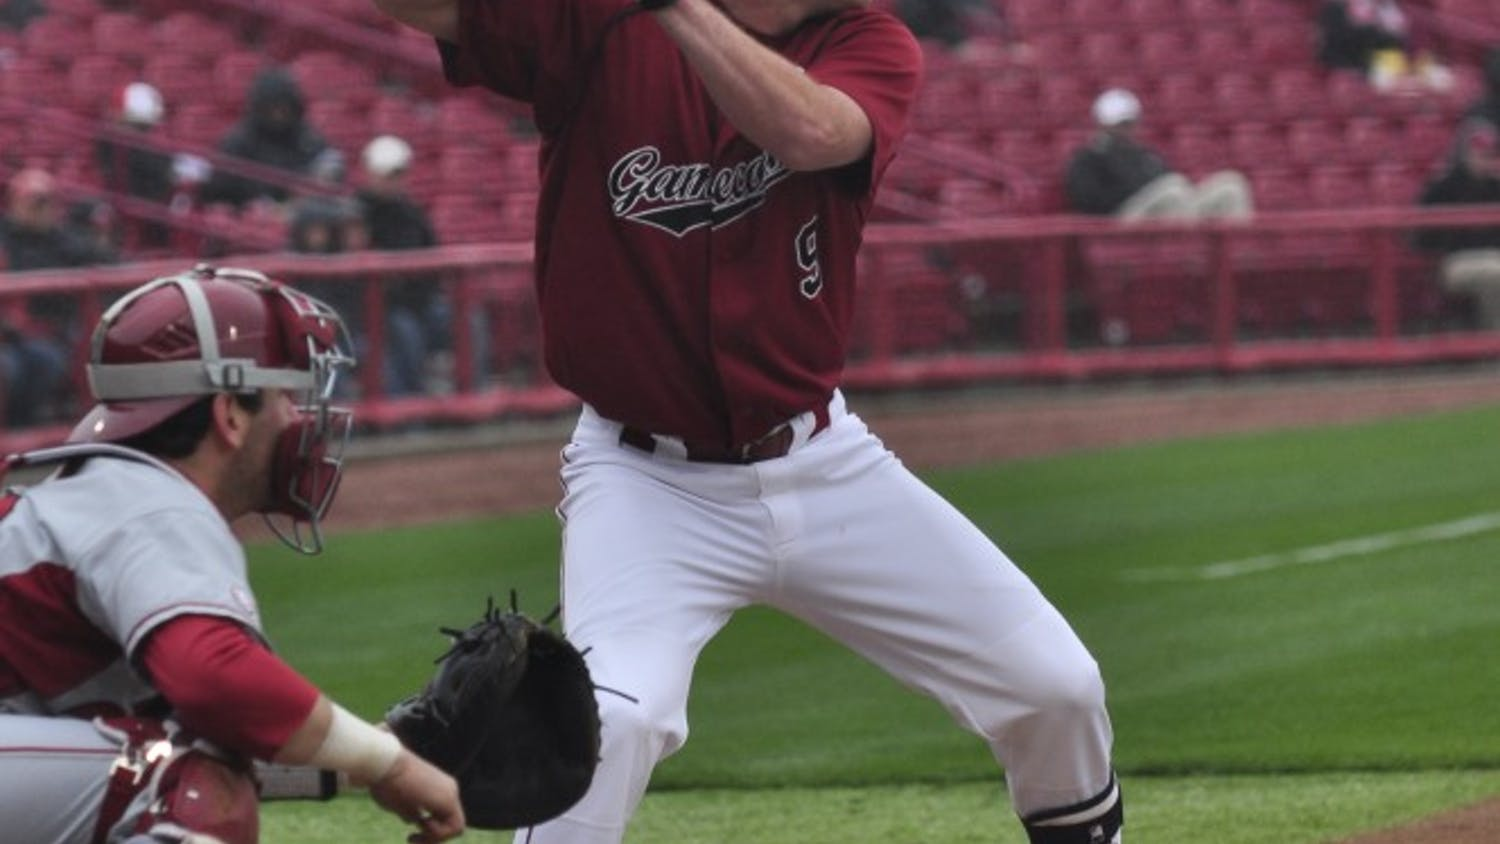 Sophomore shortstop Joey Pankake had two hits in Sunday afternoon's 11-inning 5-3 loss to Arkansas.